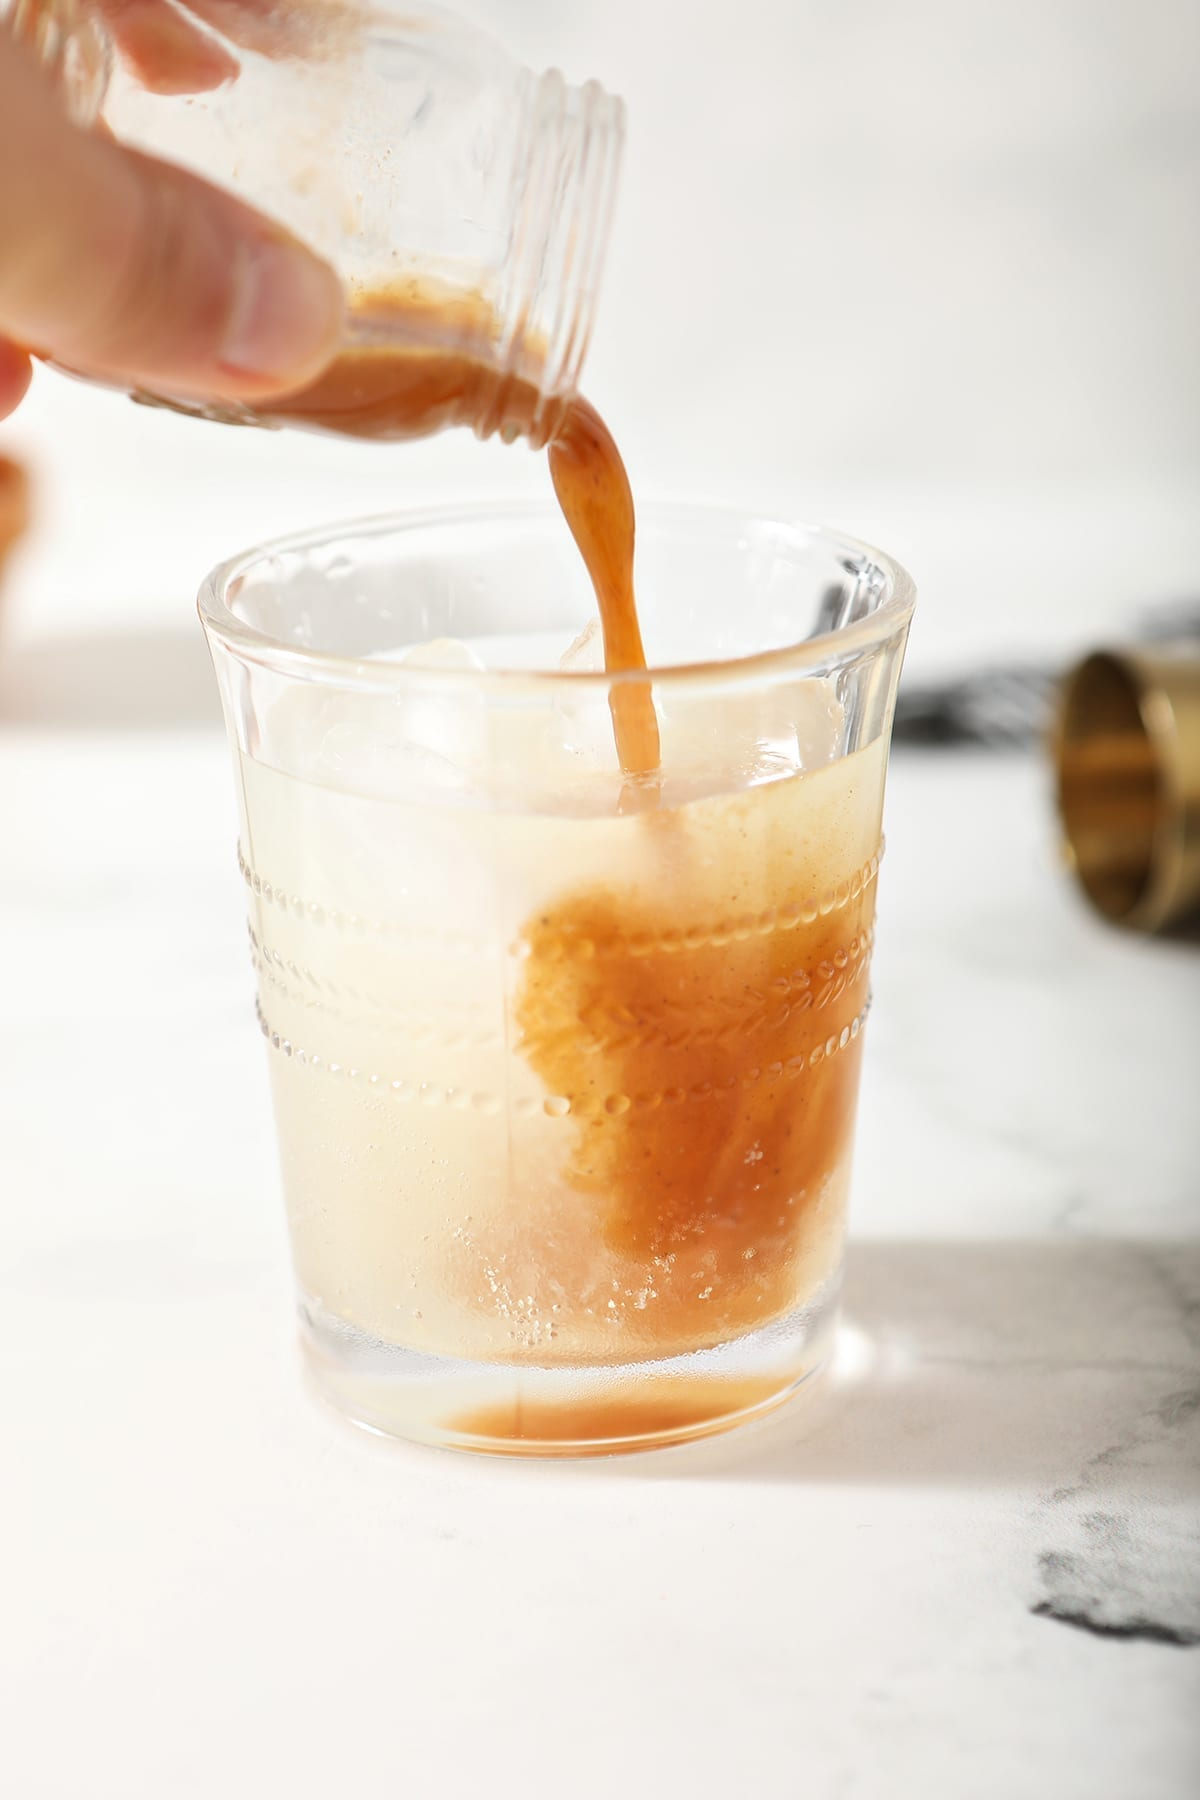 A shot of pumpkin spice syrup is poured into the drink